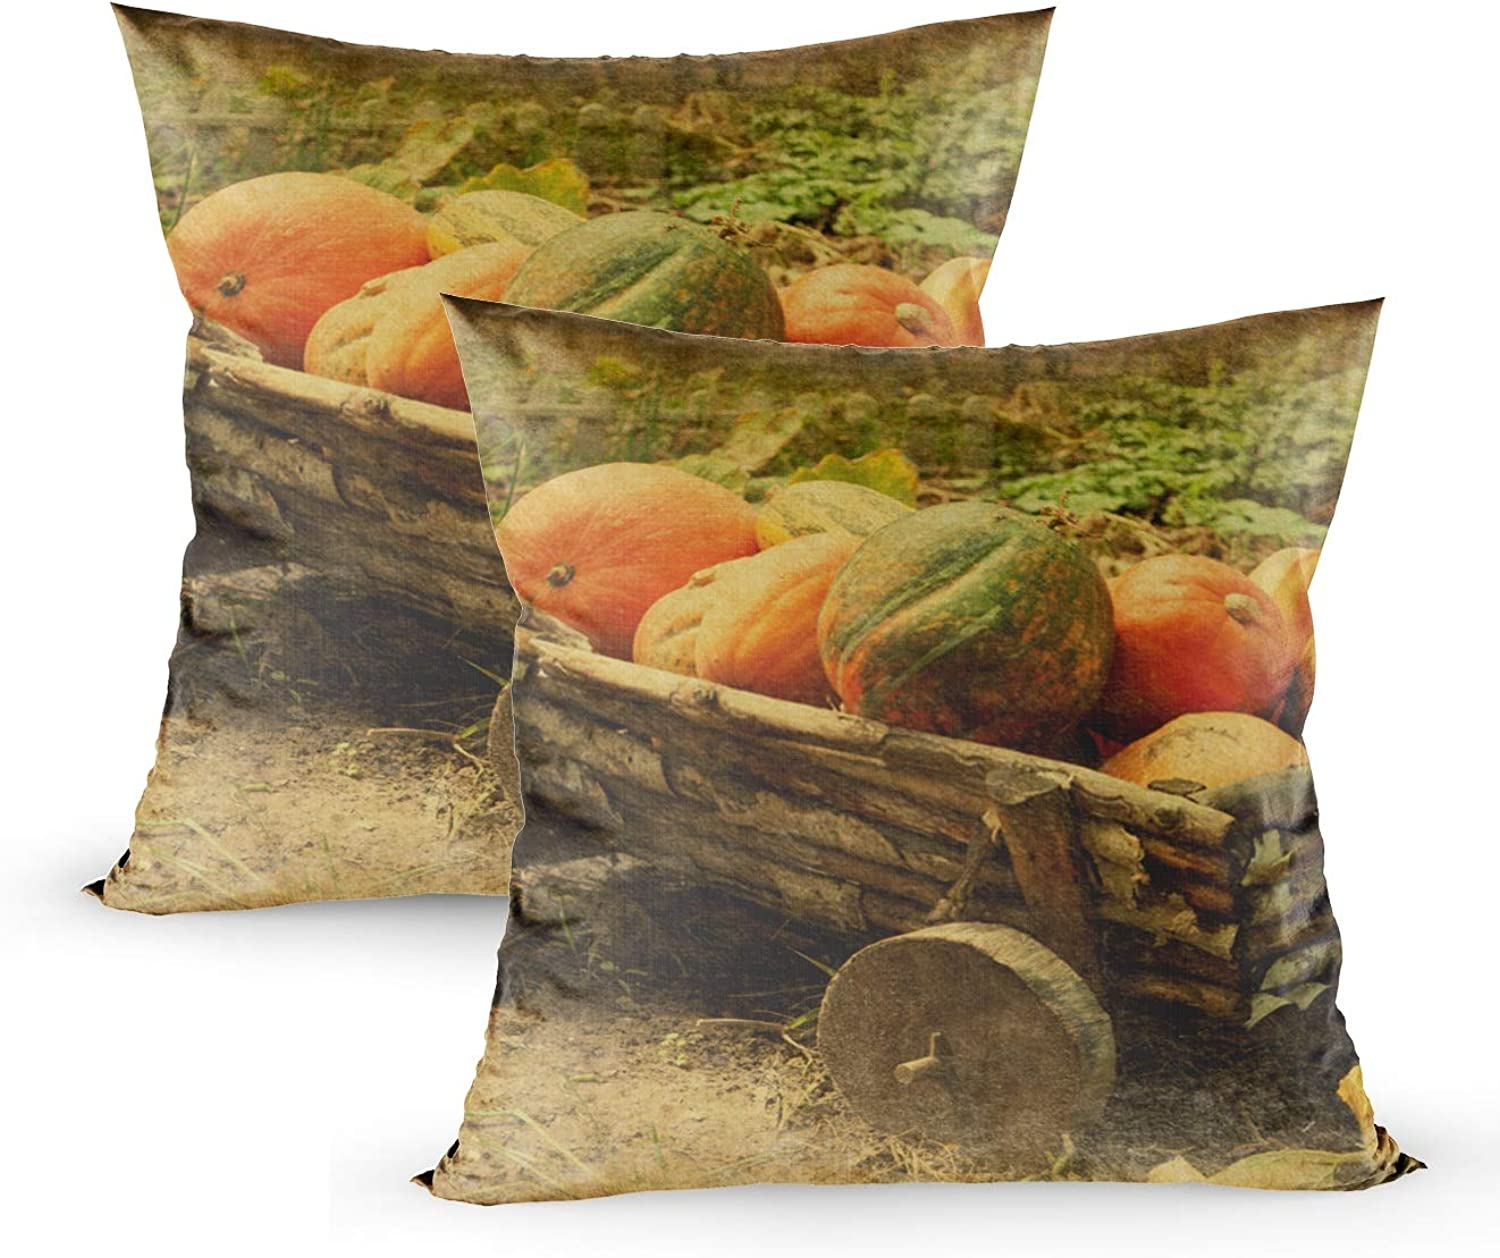 Fullentiart Zip Pillow case, Retro Image Old Wooden Cart Pumpkins Added Paper Texture Cushion Soft SkinFriendly Fade Wrinkle Resistant and Easy to wash 18X18inches 2PCS